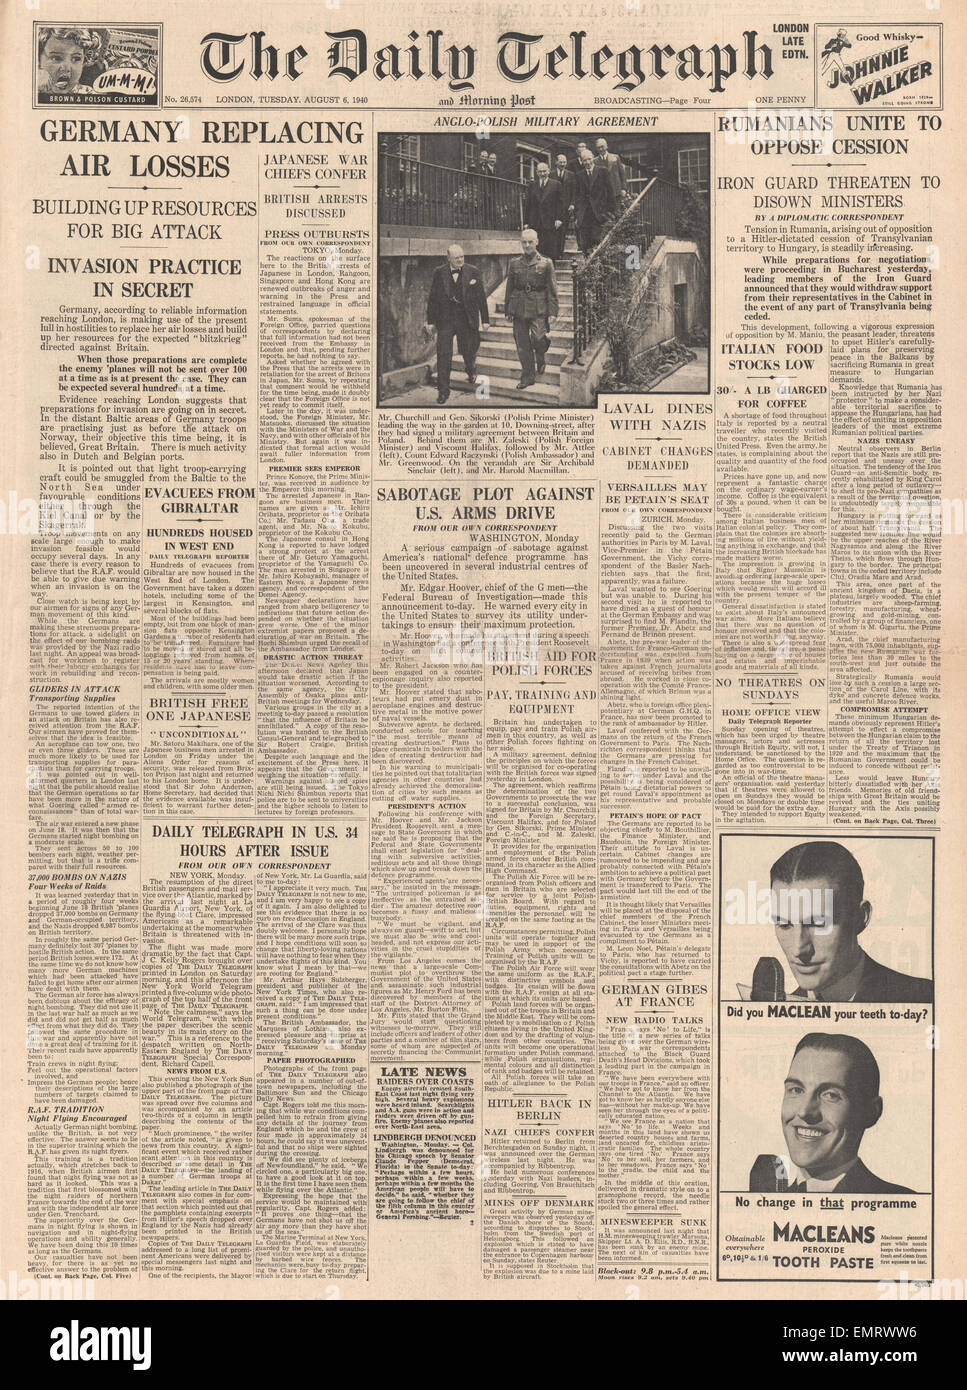 1940 front page Daily Telegraph Germany Replacing Air Losses Anglo - Polish Military Agreement  Romanians oppose Stock Photo